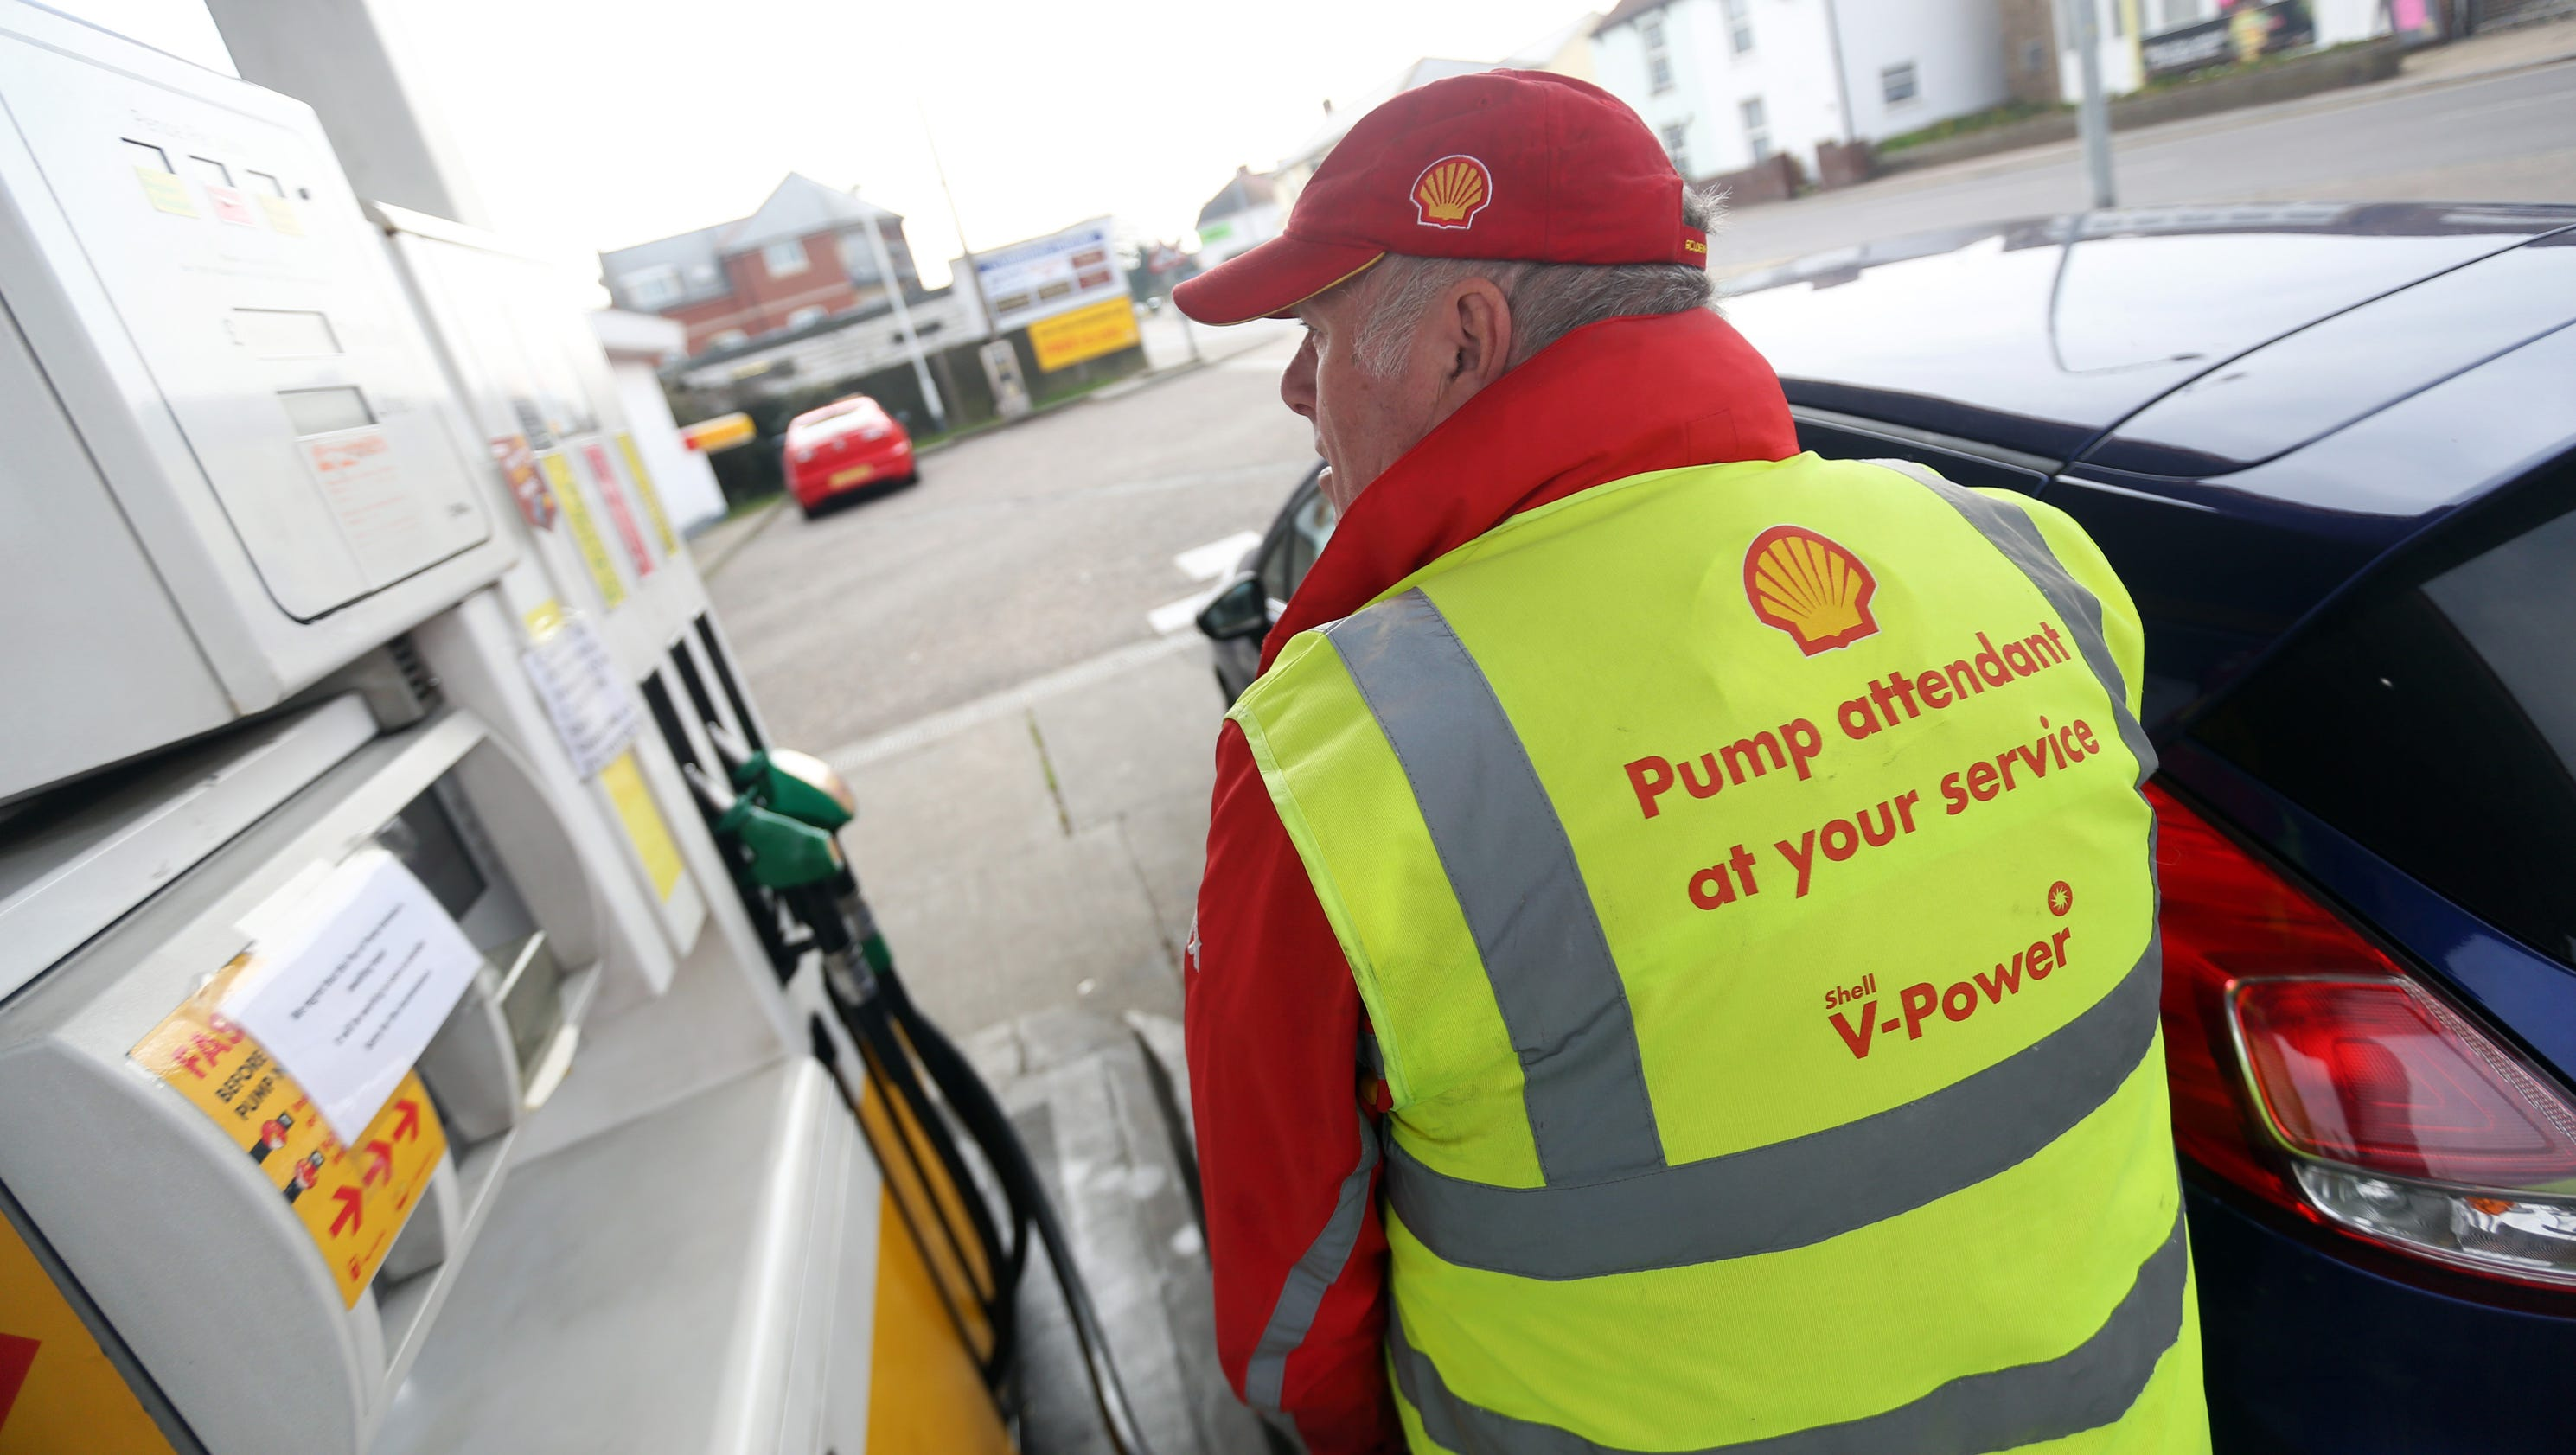 5 key things about shell bg oil merger